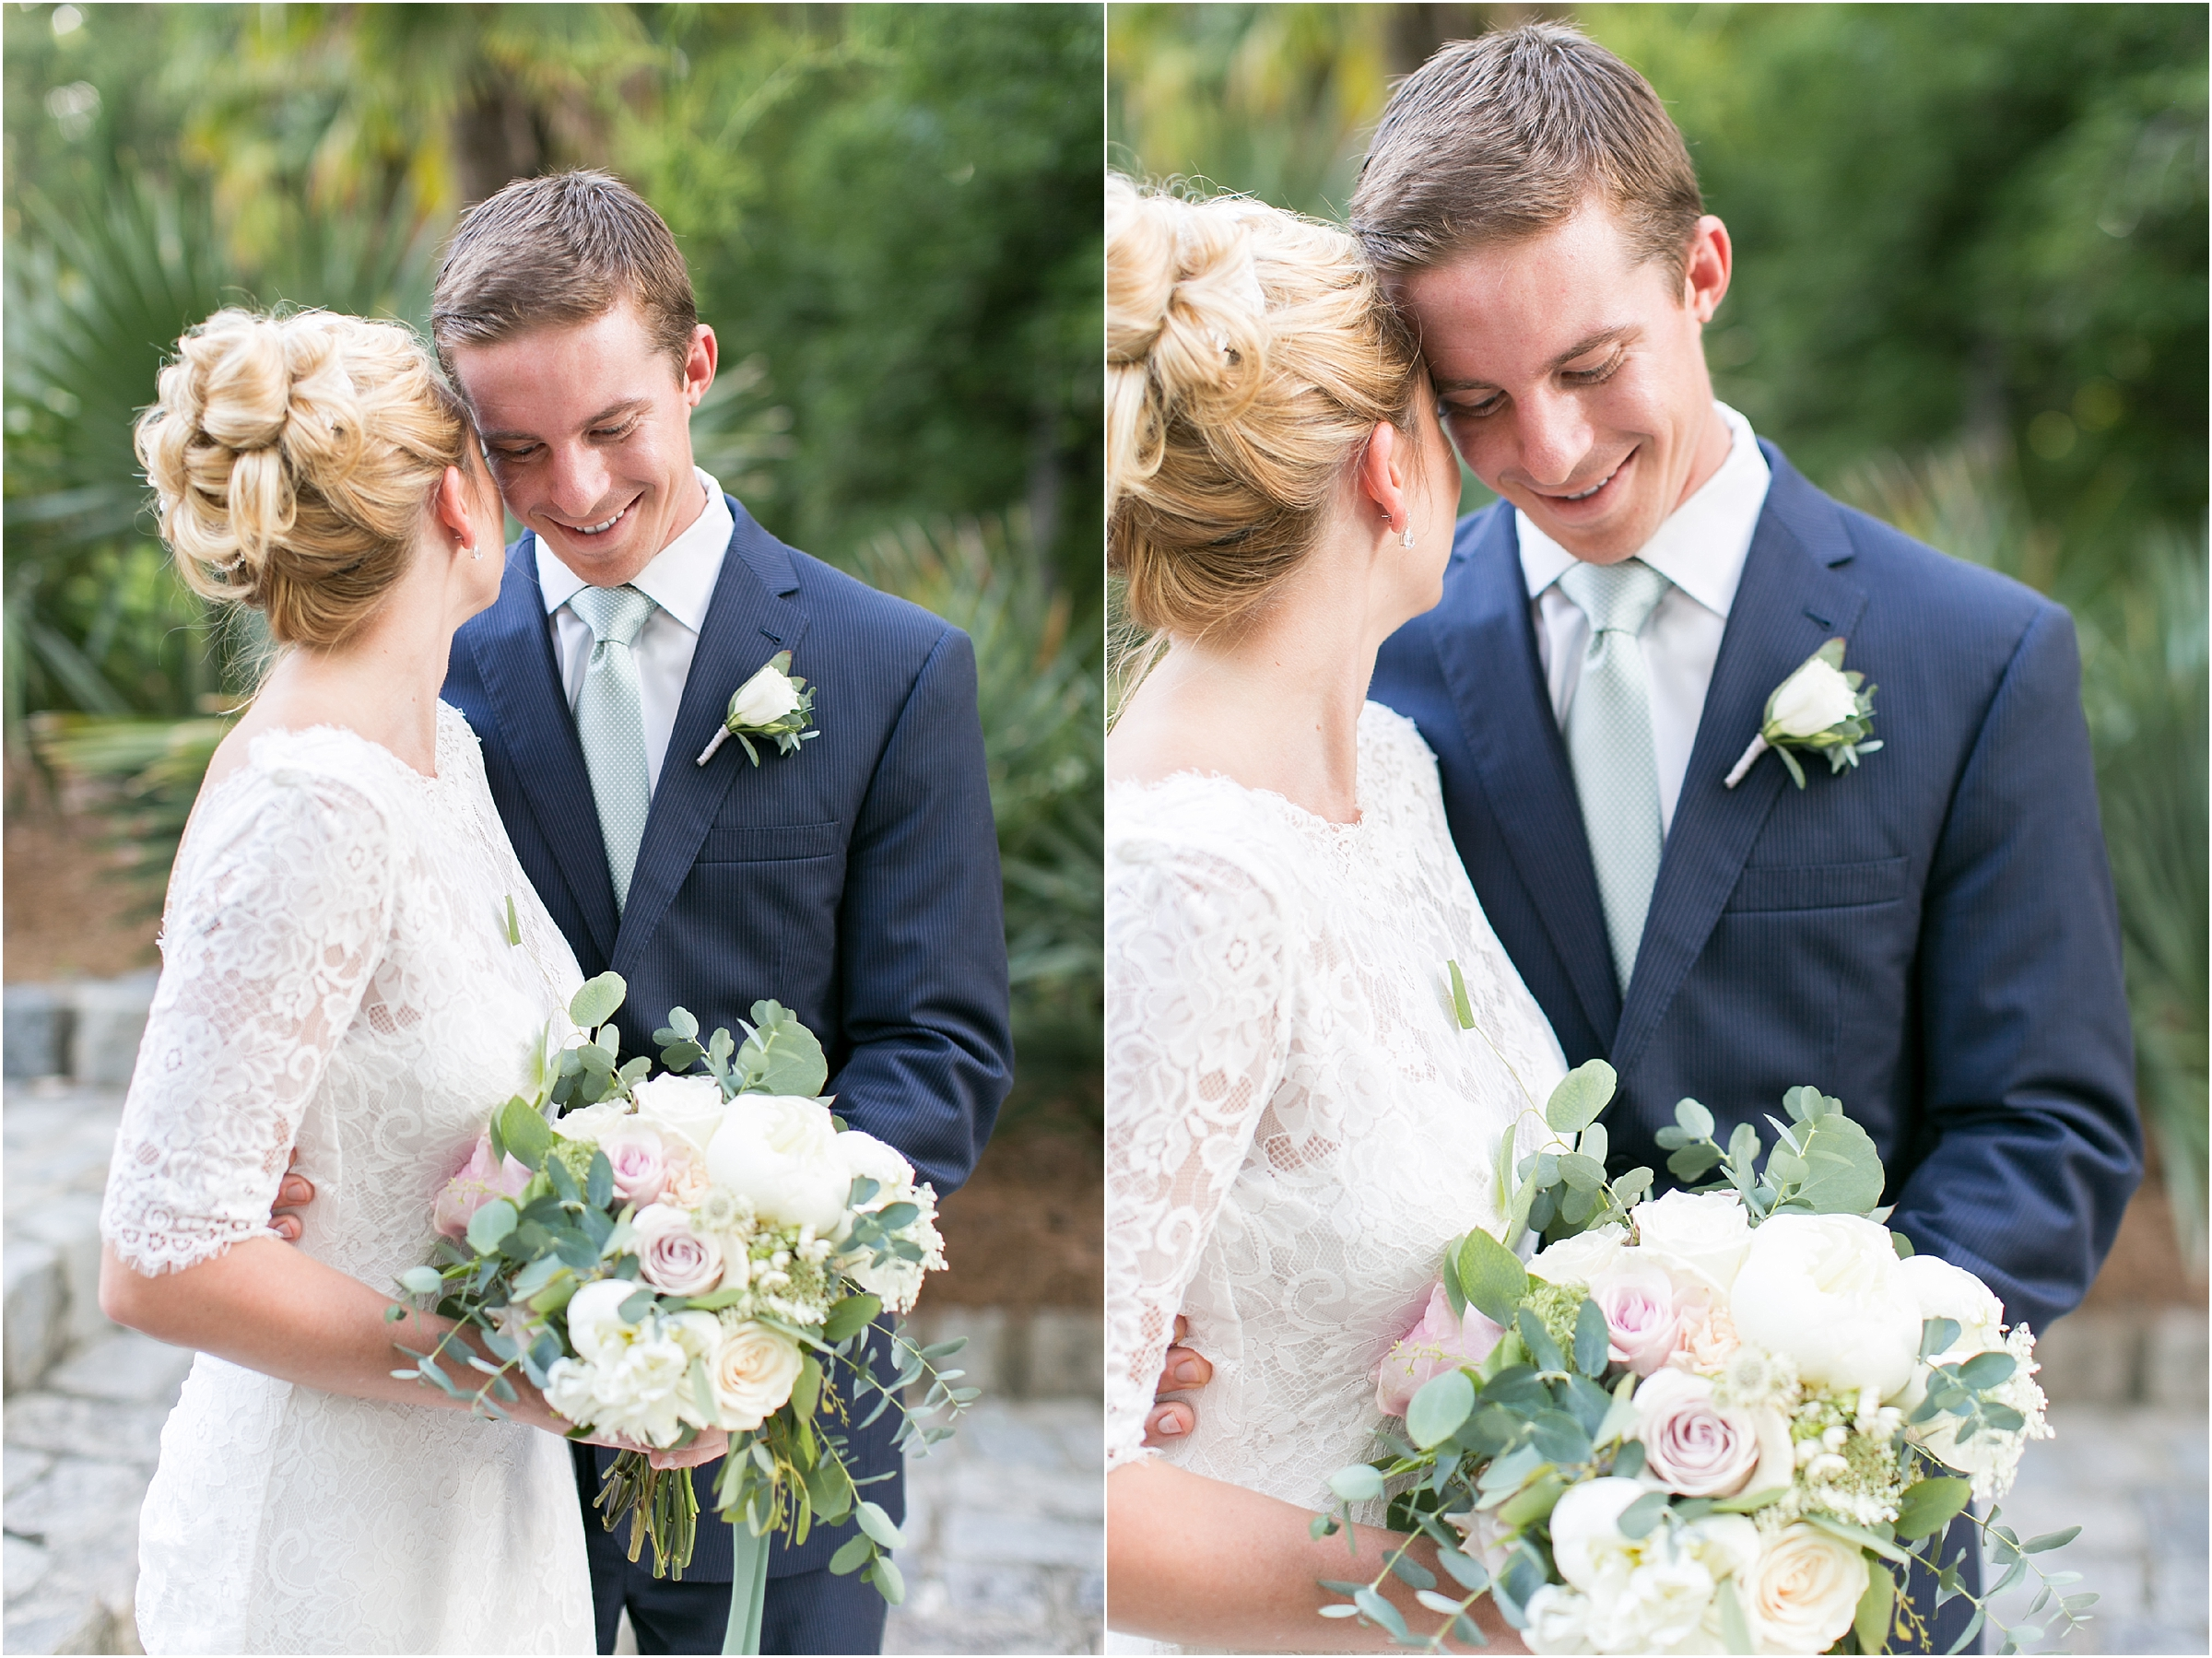 botanical gardens wedding photography norfolk virginia jessica ryan photography